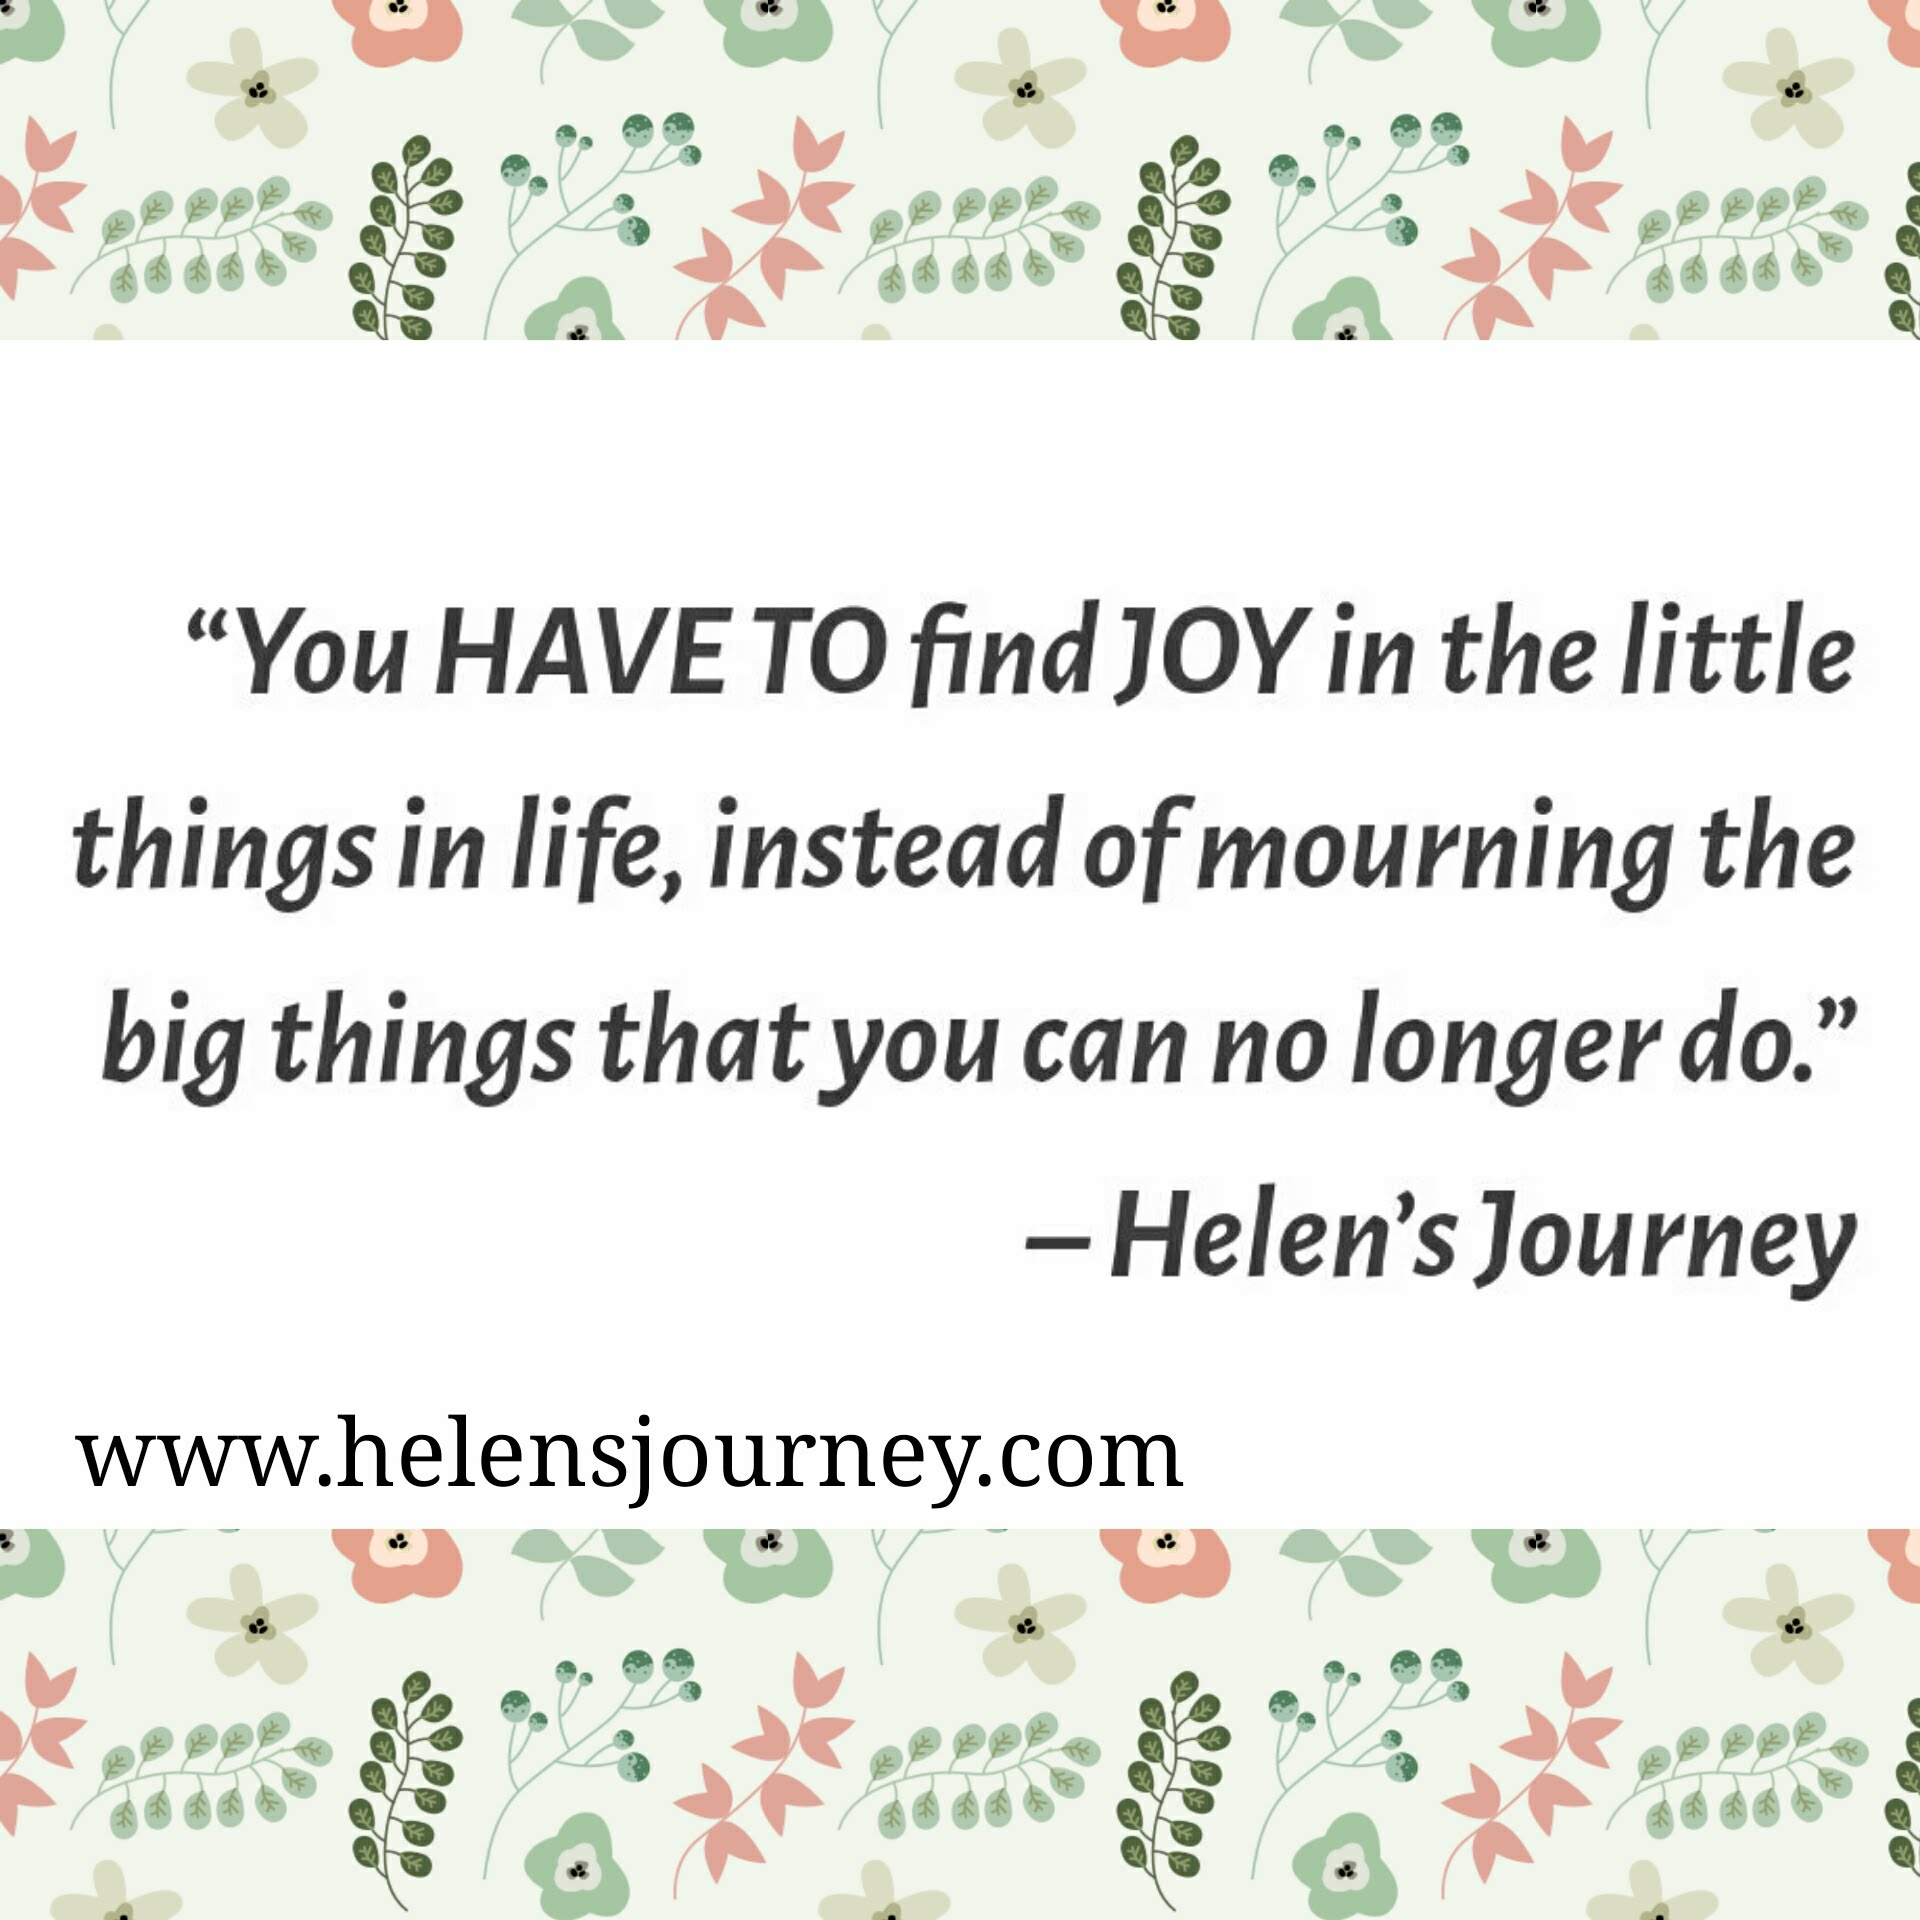 helens journey quote about appreciating the small things in life you can do, not big things you cant do.